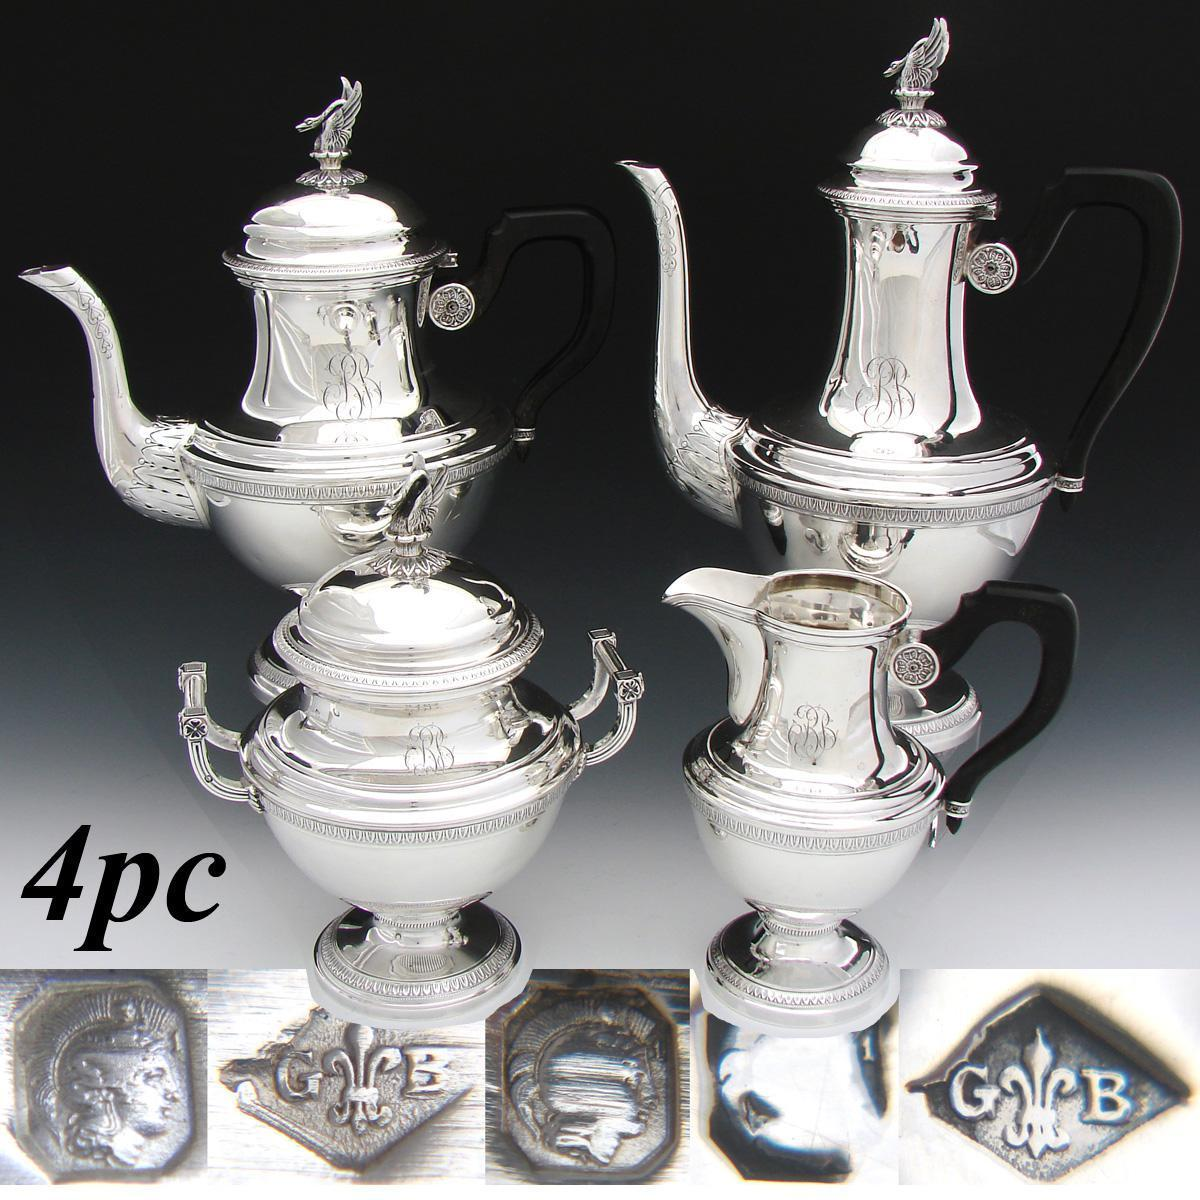 Rare Antique French Sterling Silver 4pc Coffee & Tea Set, 2 Pots, Sugar & Creamer: Empire SWAN Finials!